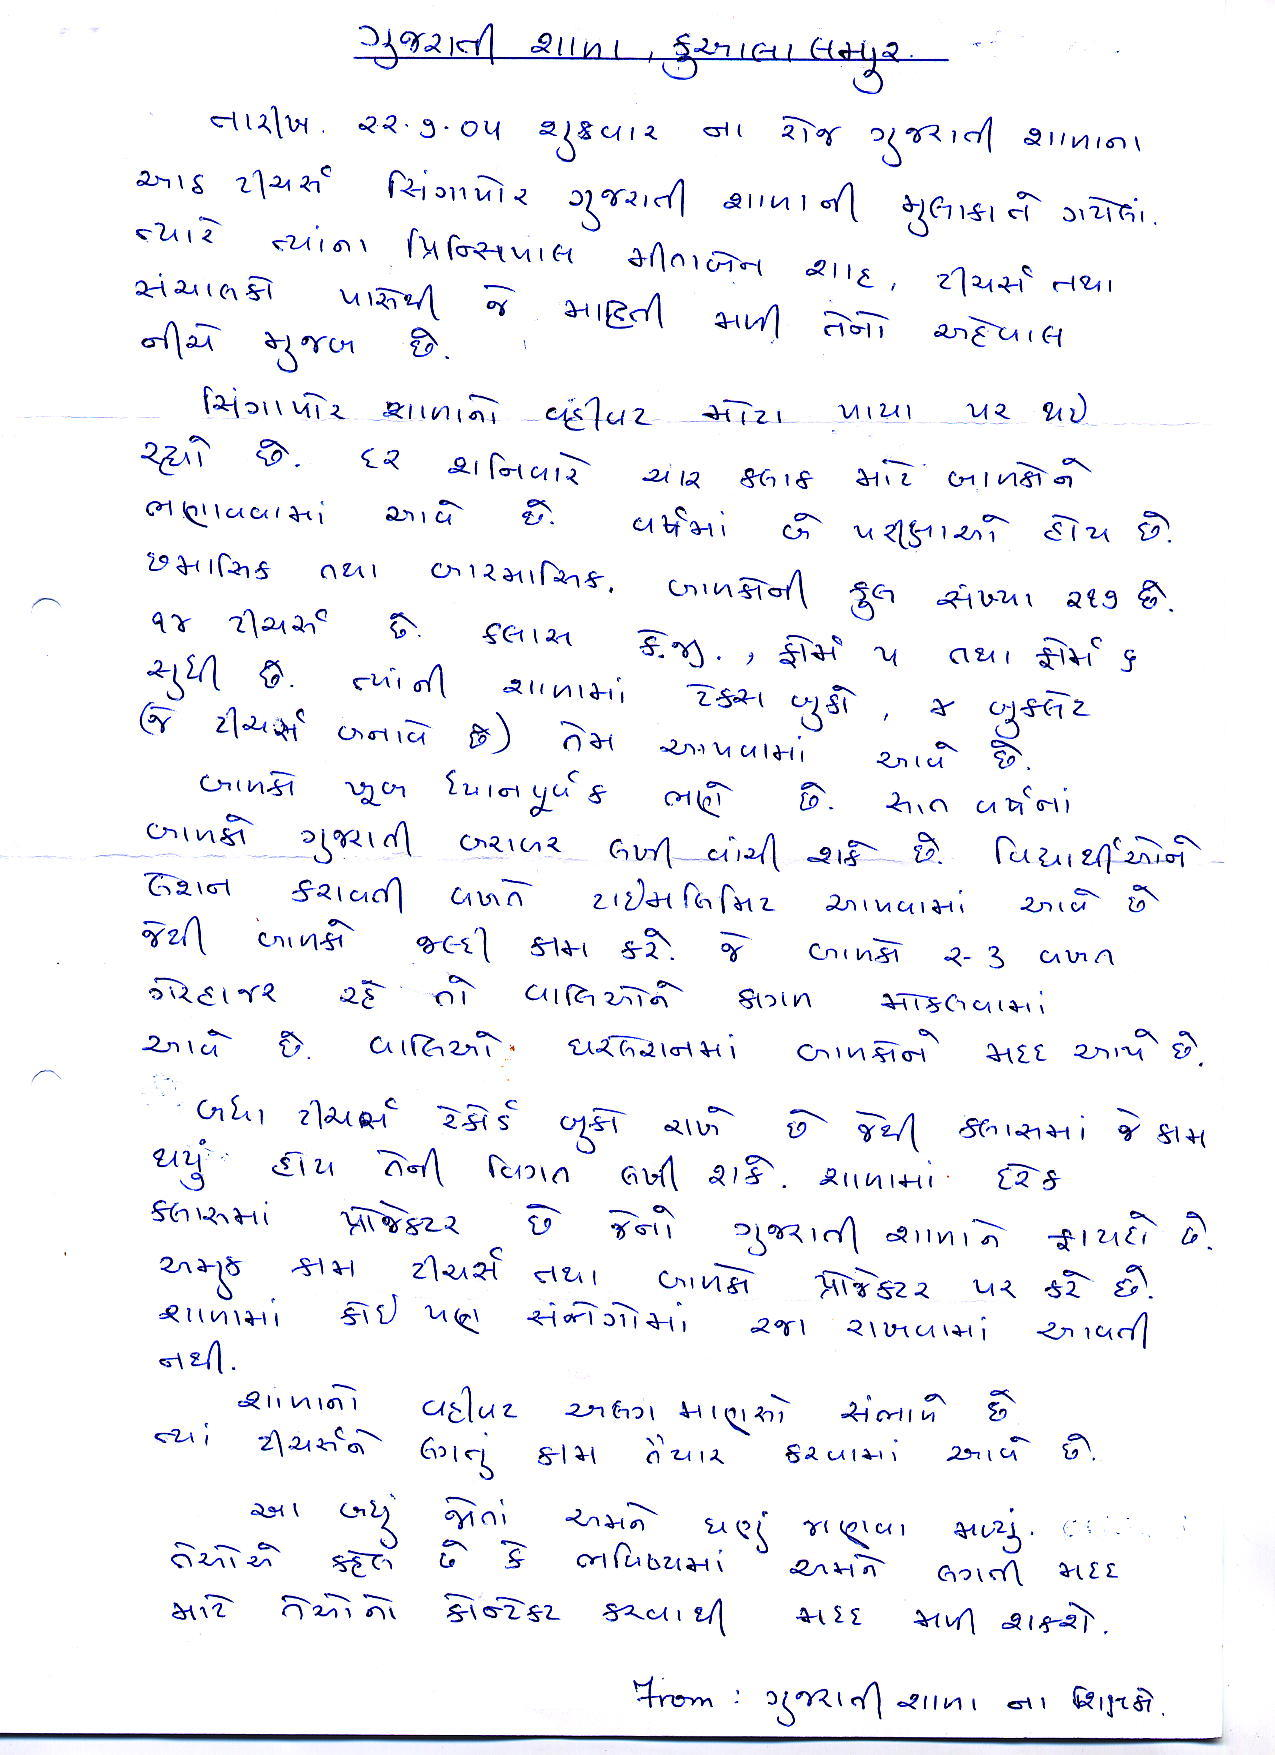 essay about mothers love Free essay written on mothers love in gujarati language keyword essays and term papers available at echeatcom, the largest free essay community.